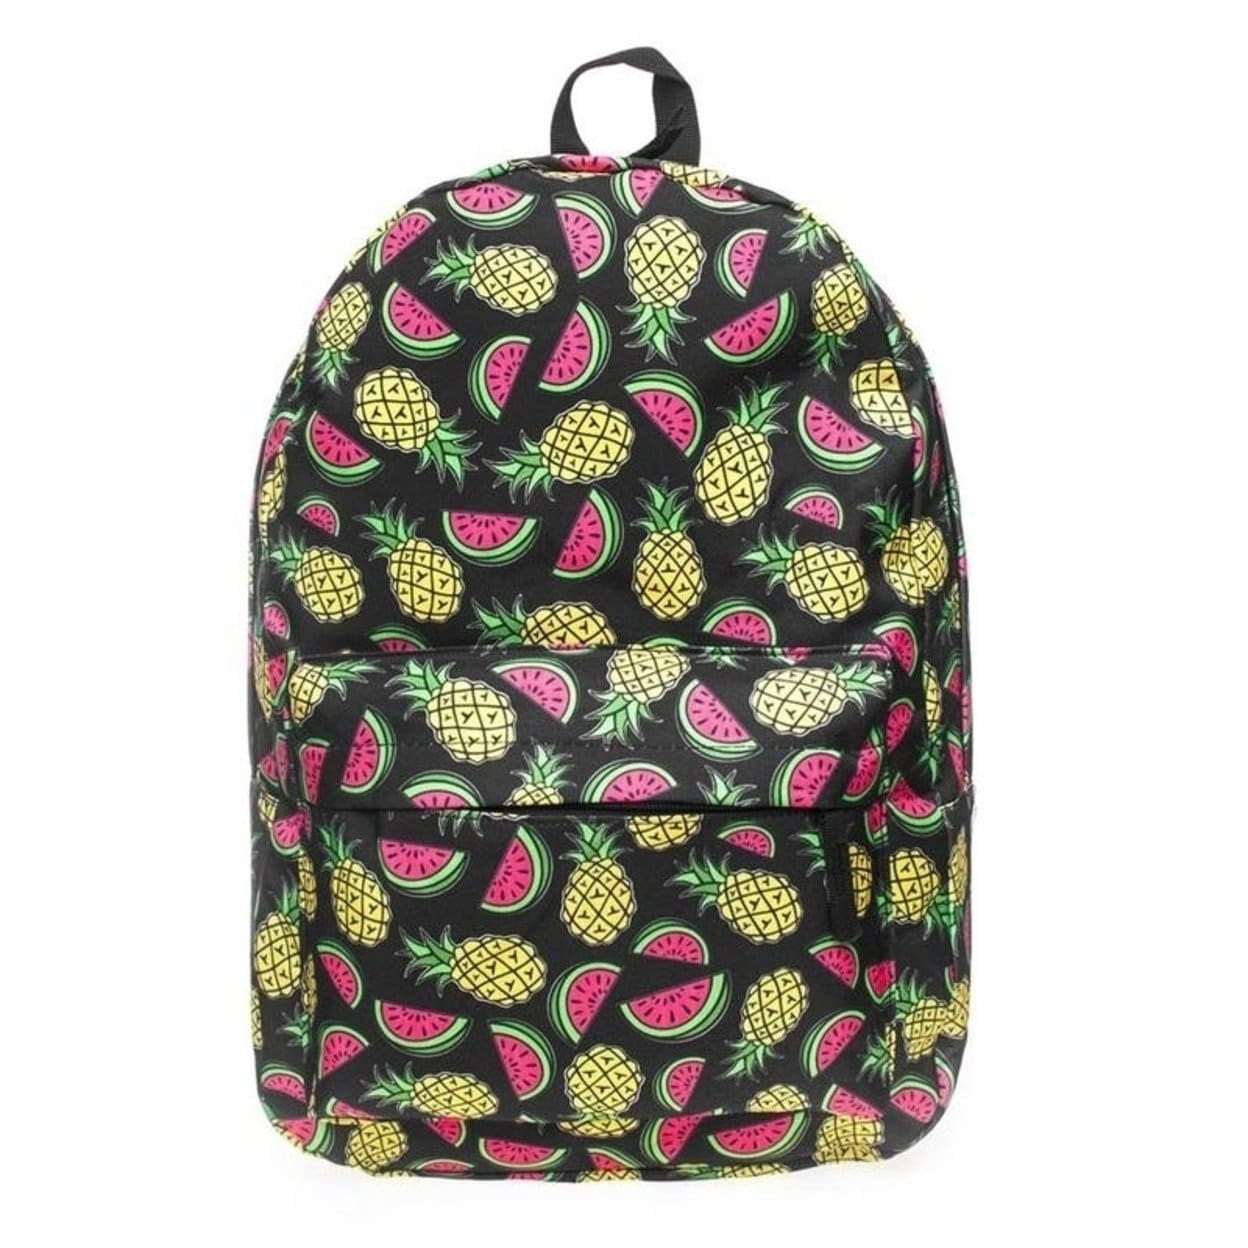 Leather Watermelon Pineapple And Holiday Backpack Daypack Bag Women